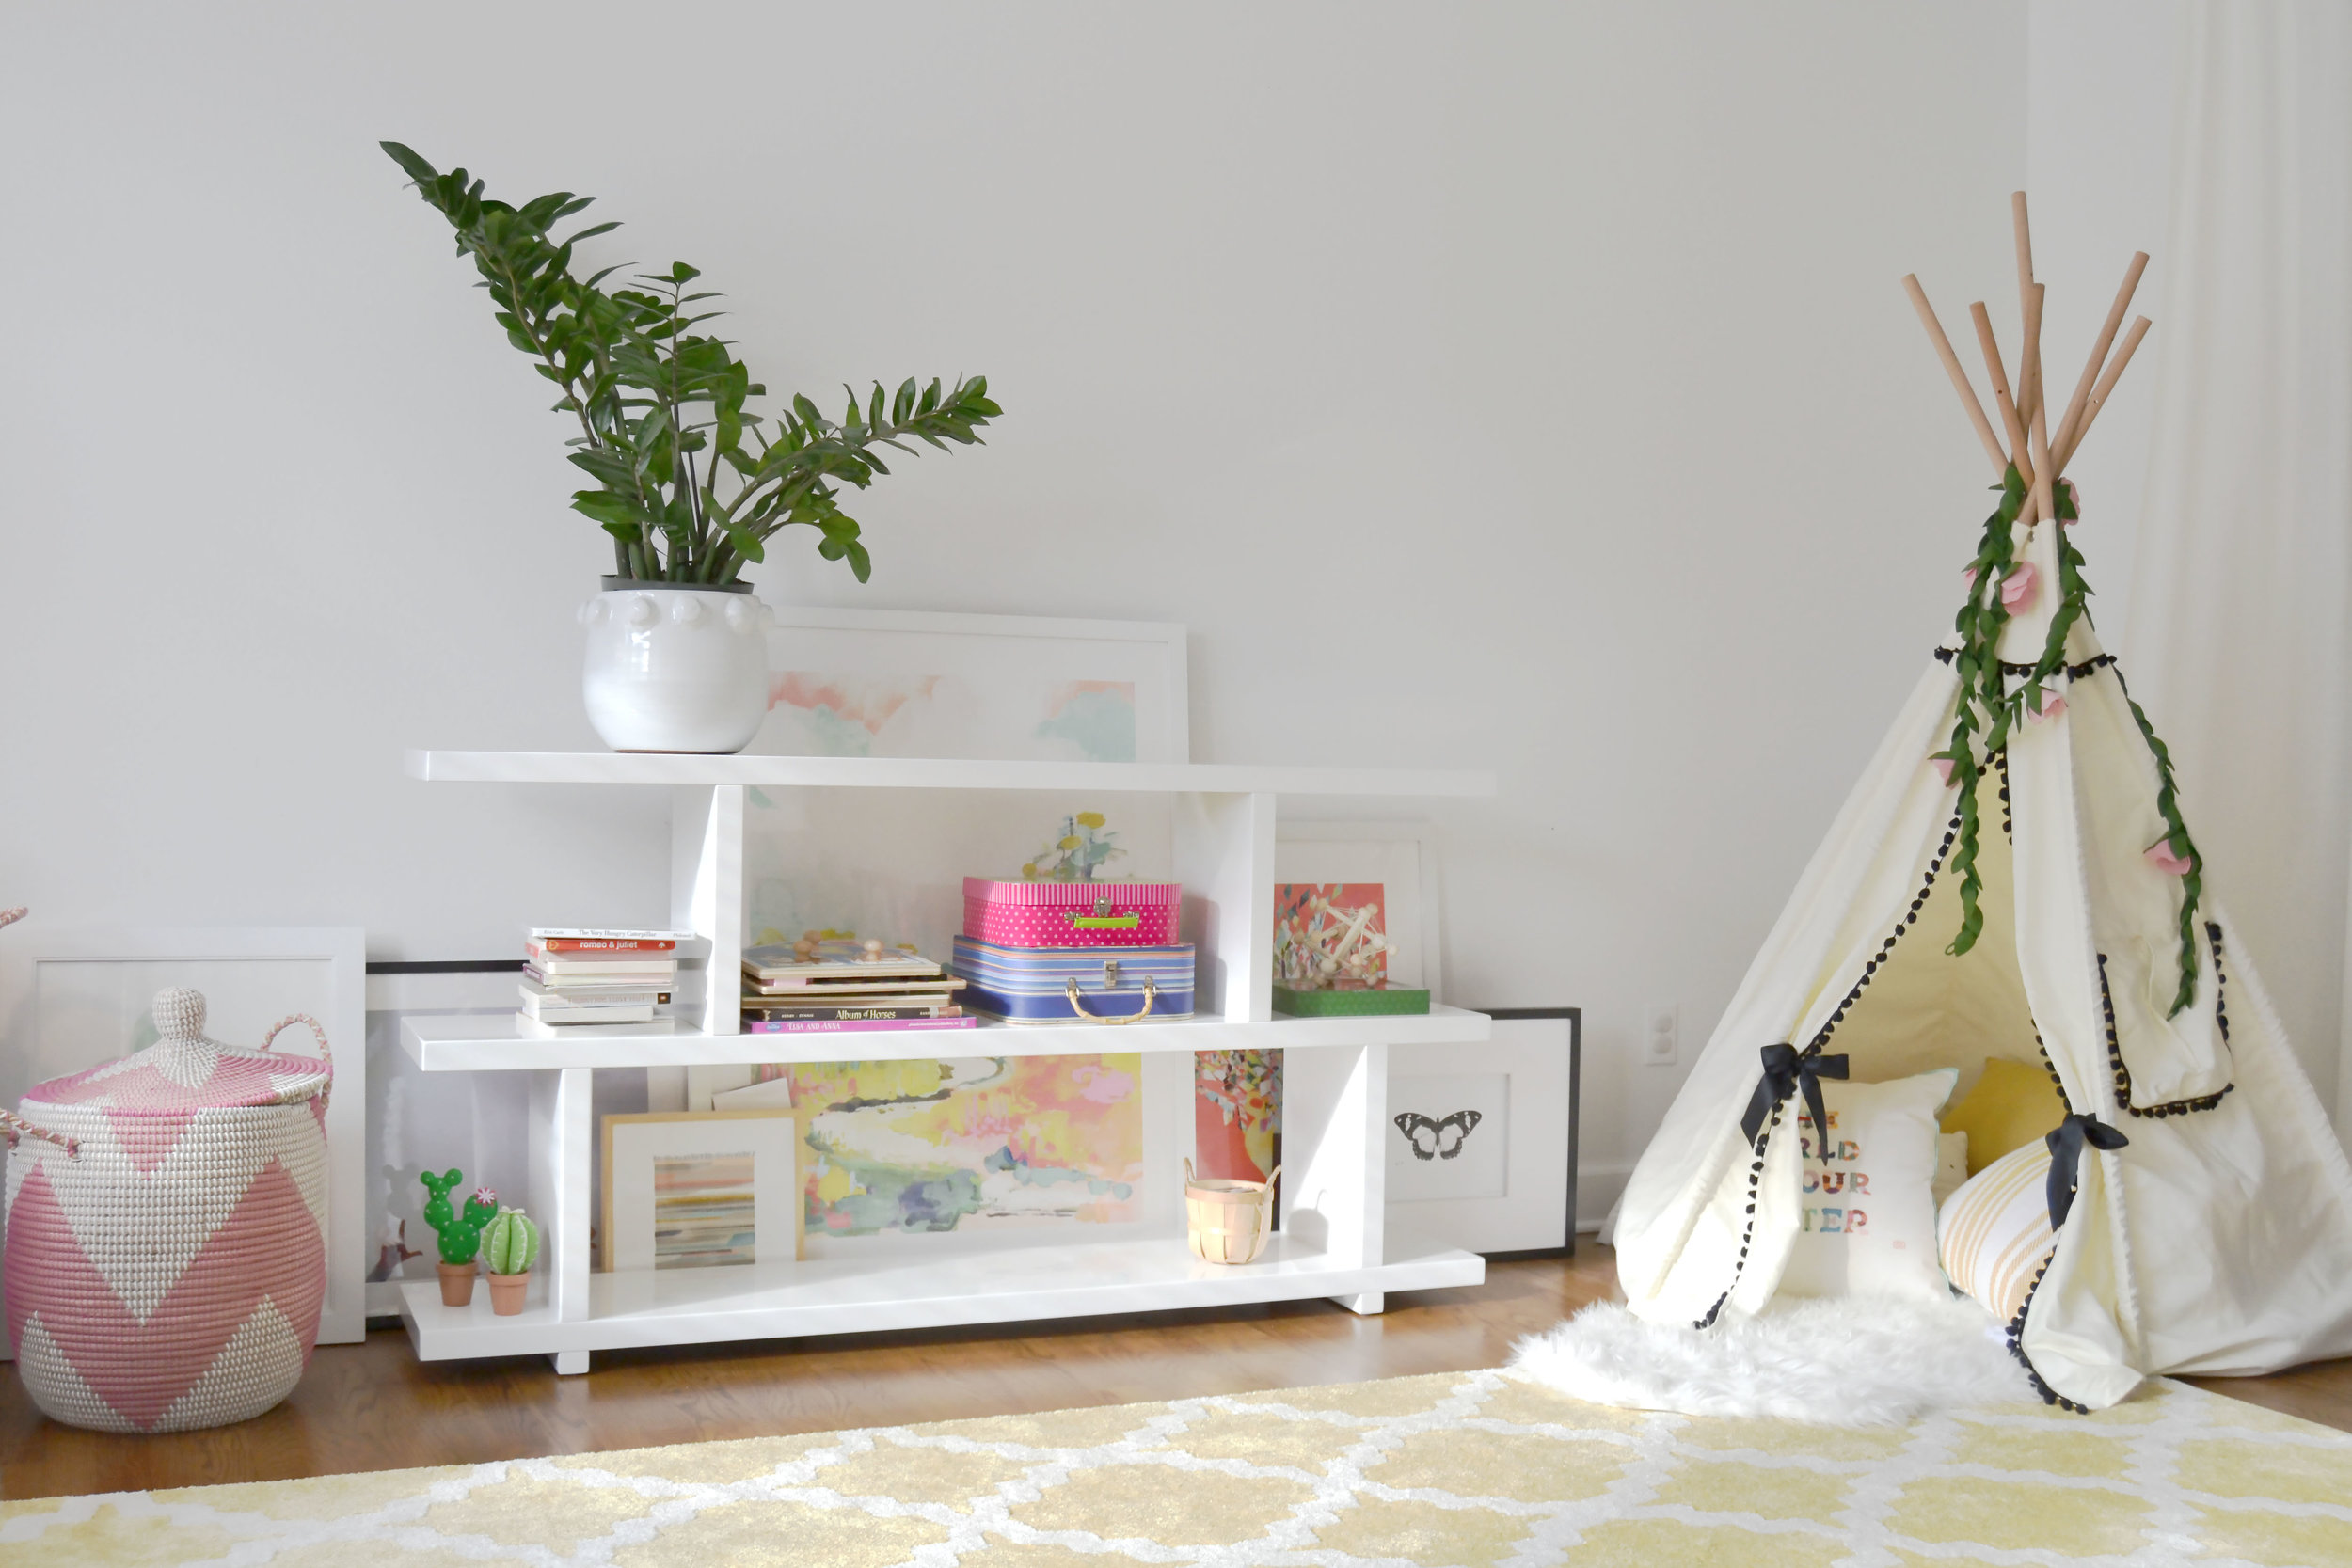 playroom bookshelves and teepee.jpg